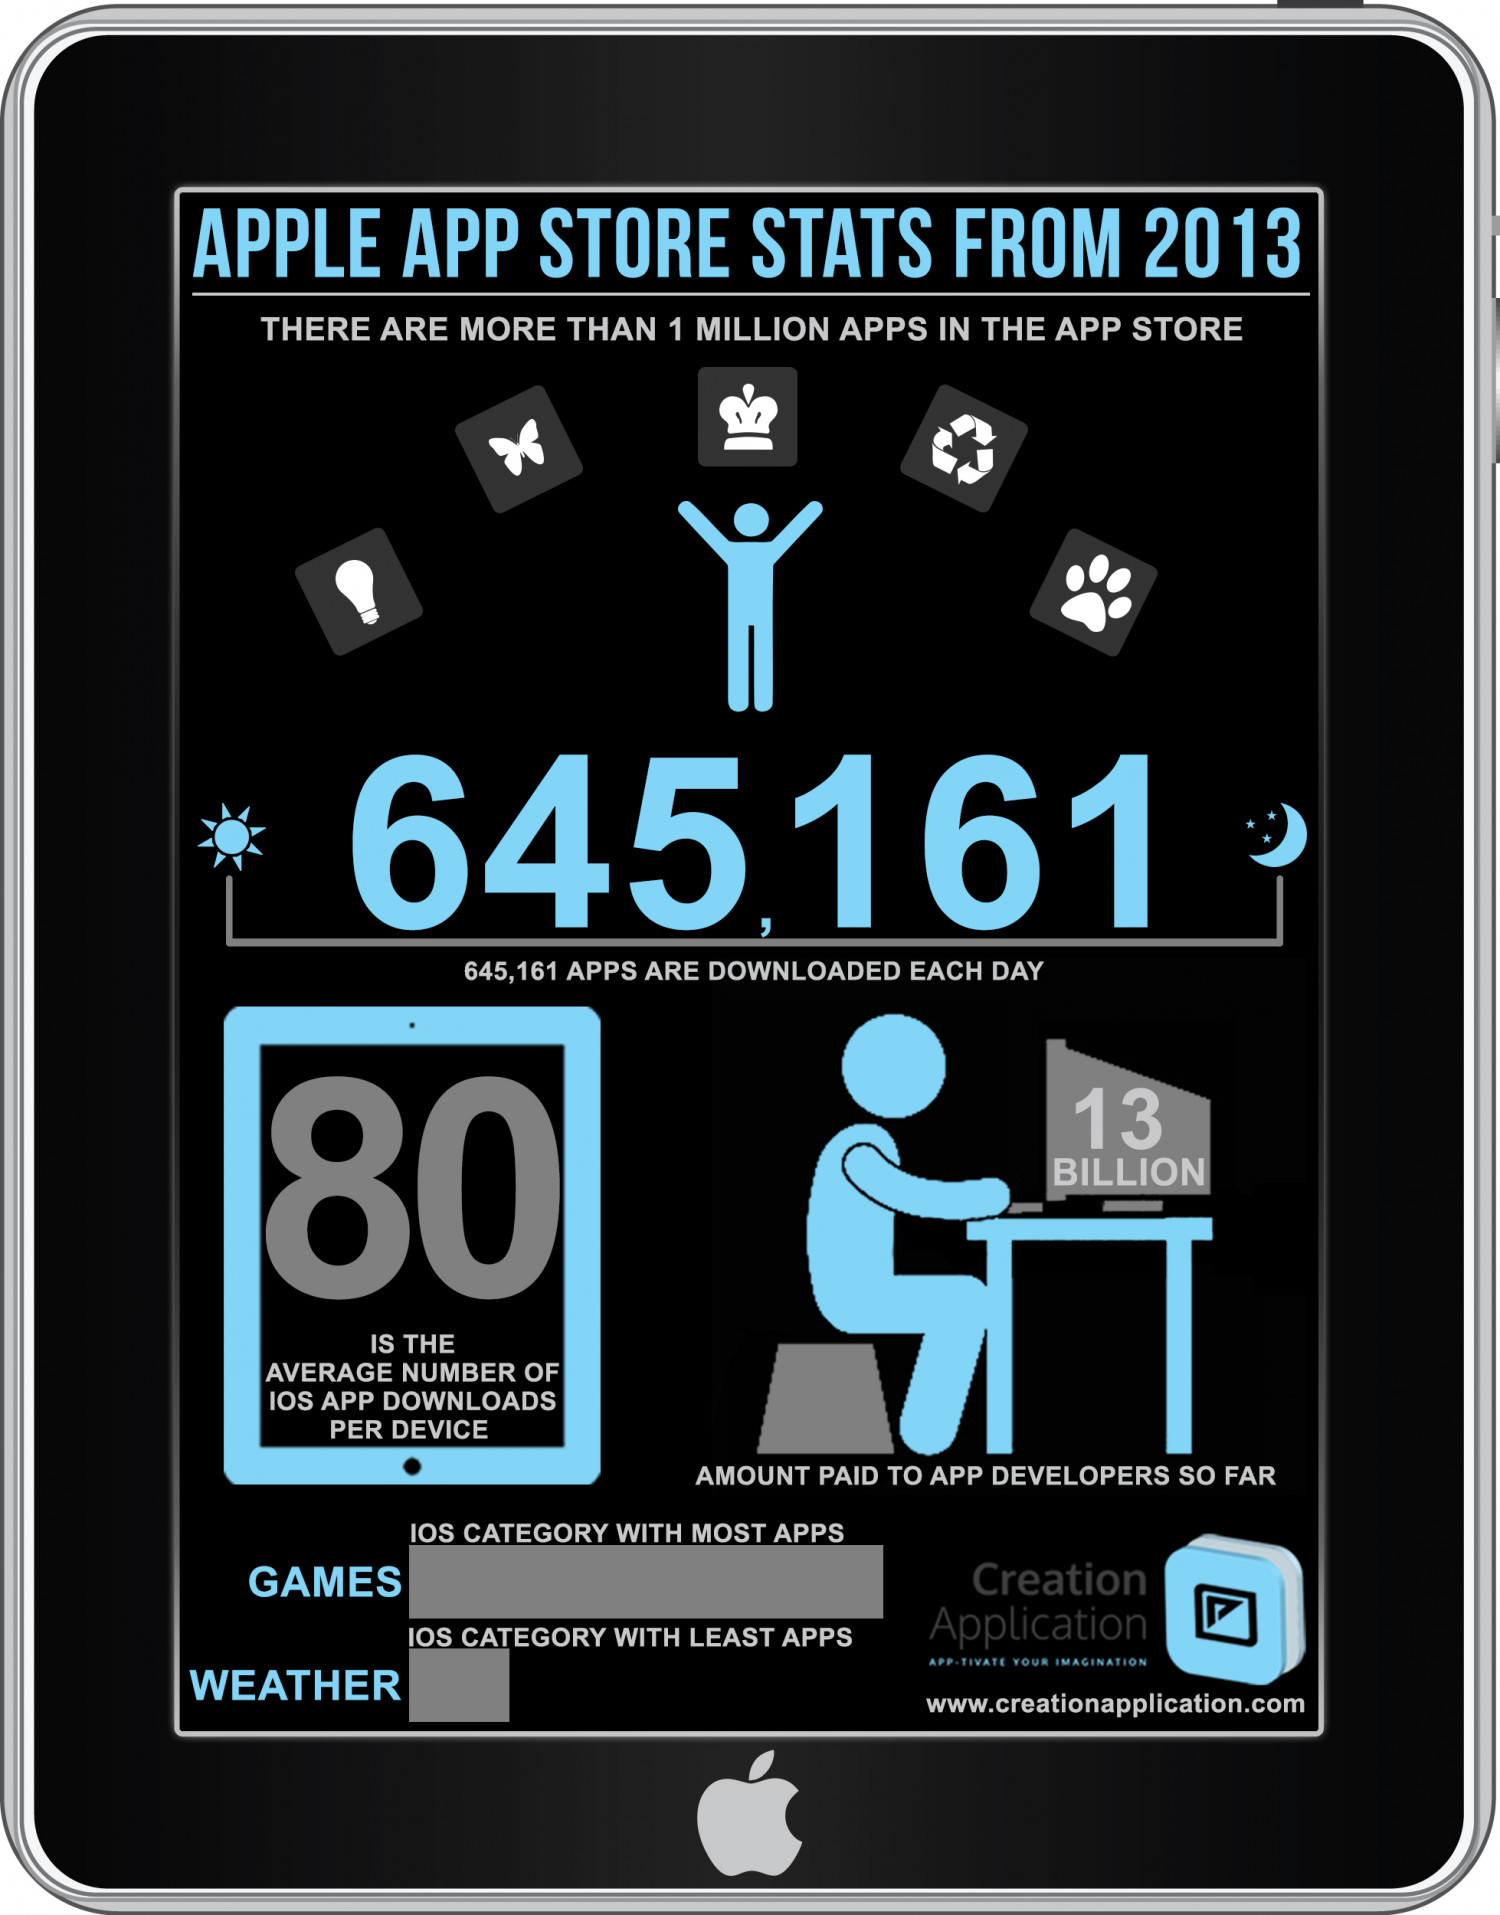 Apple App Store stats - 2103 Infographic